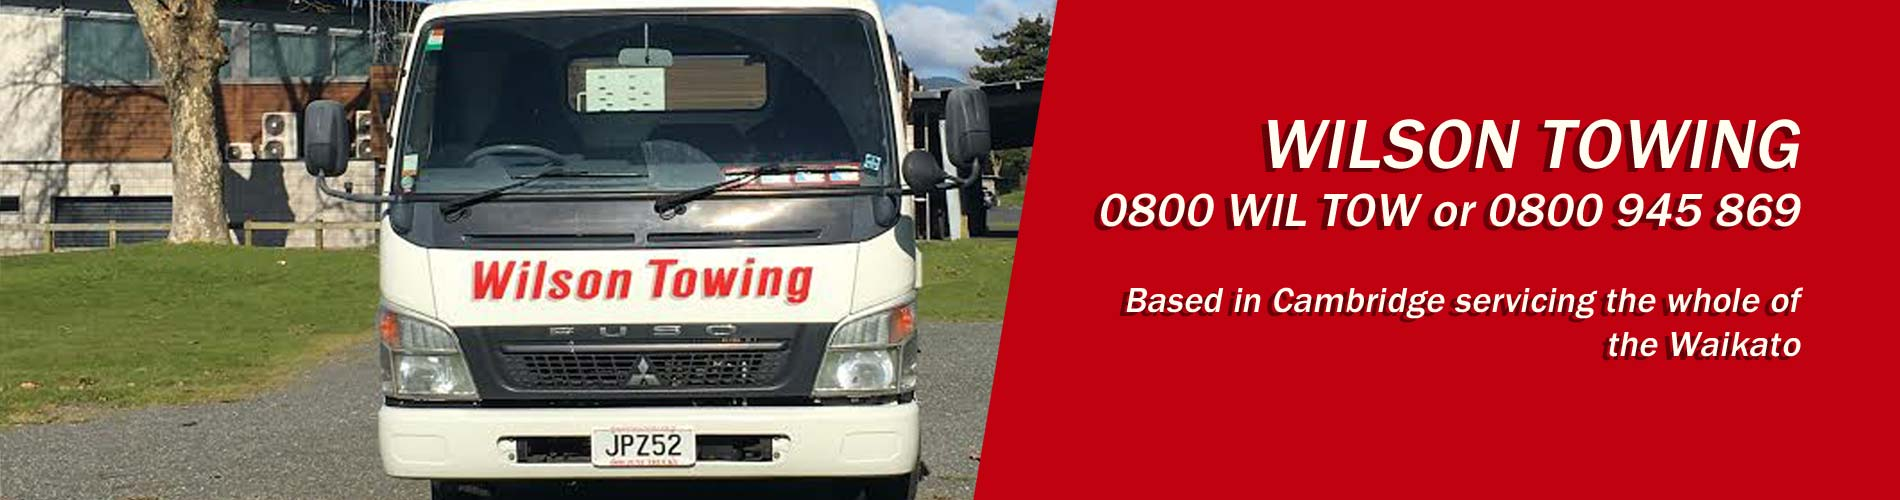 Wilson Towing offering towing services in Cambridge, Waikato